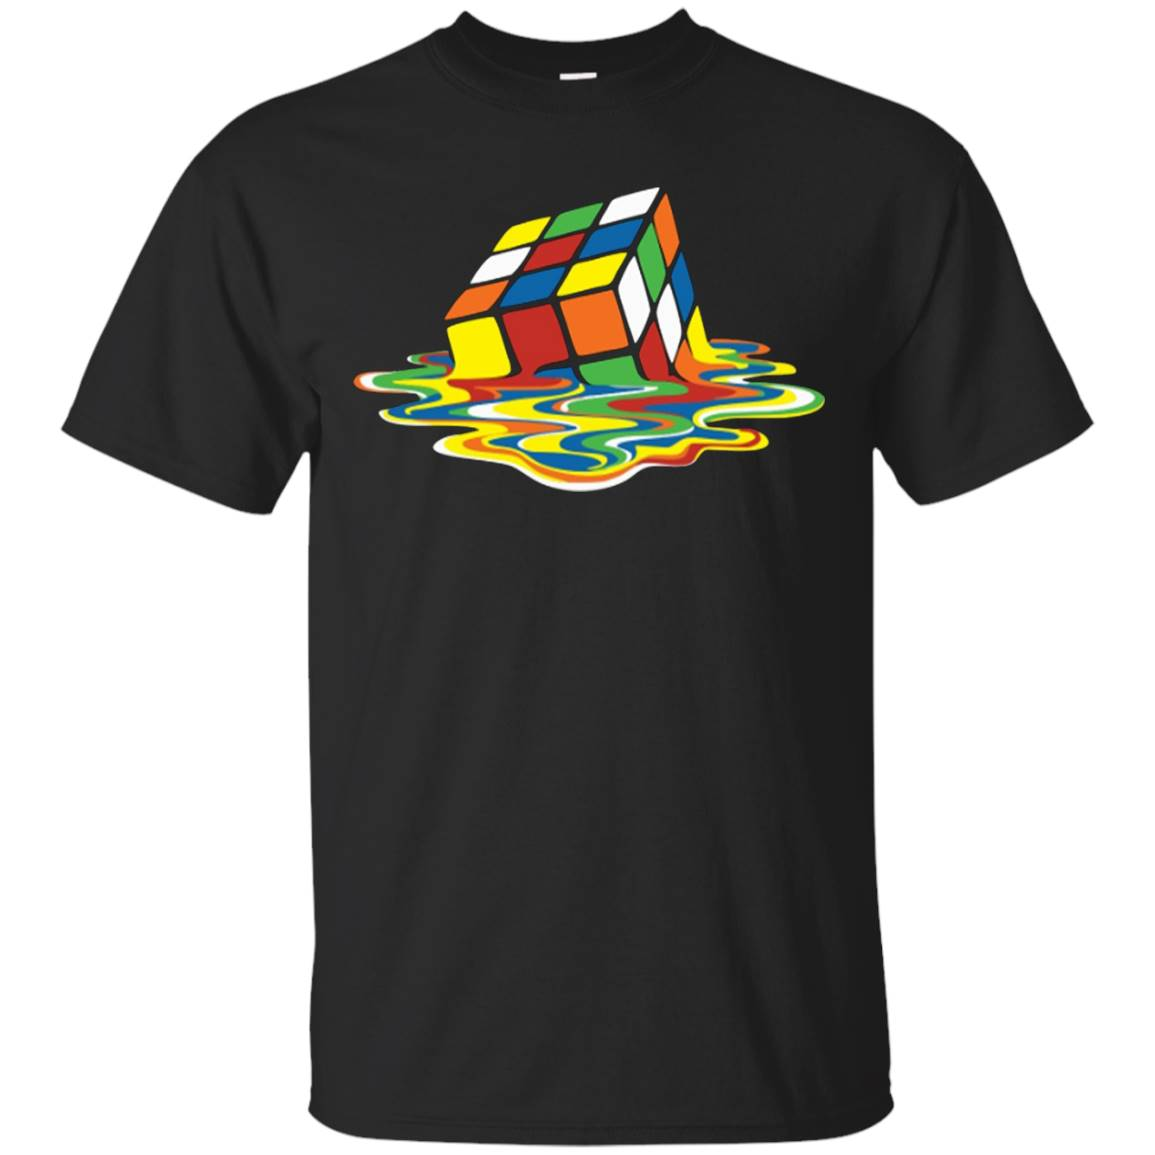 Melting Rubix Cube Game T-Shirt